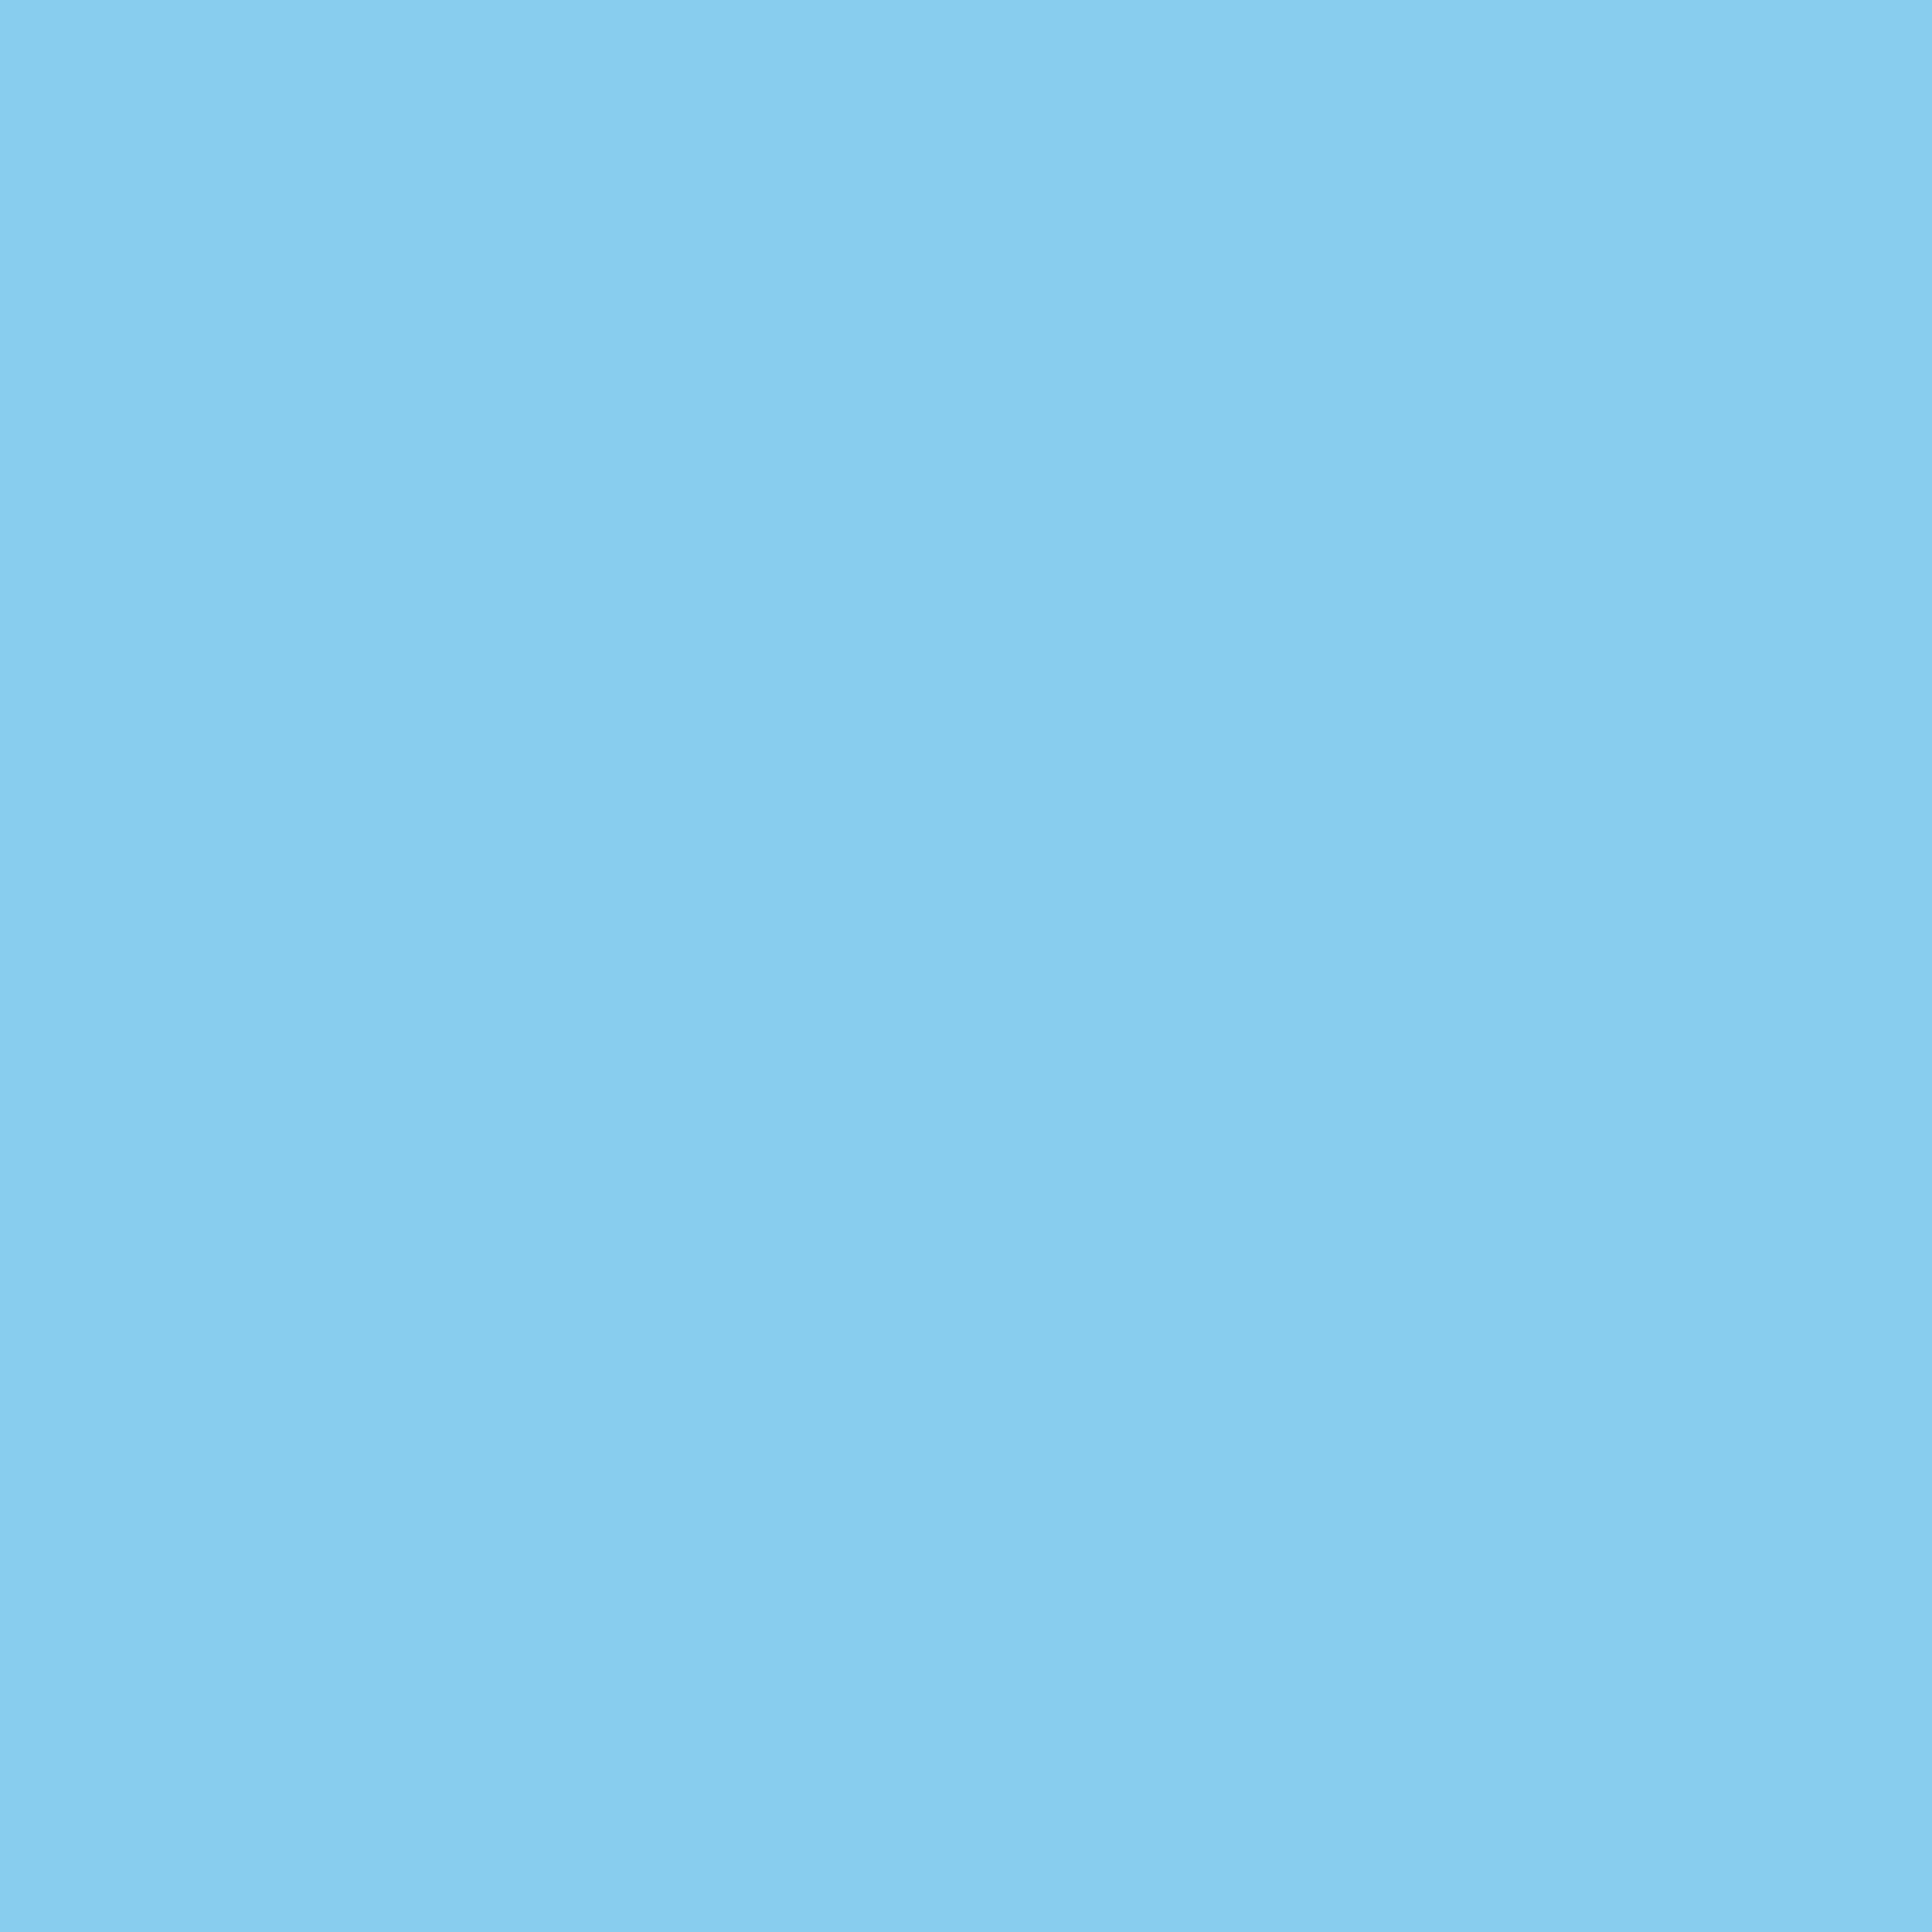 2048x2048 Sky Blue Solid Color Background